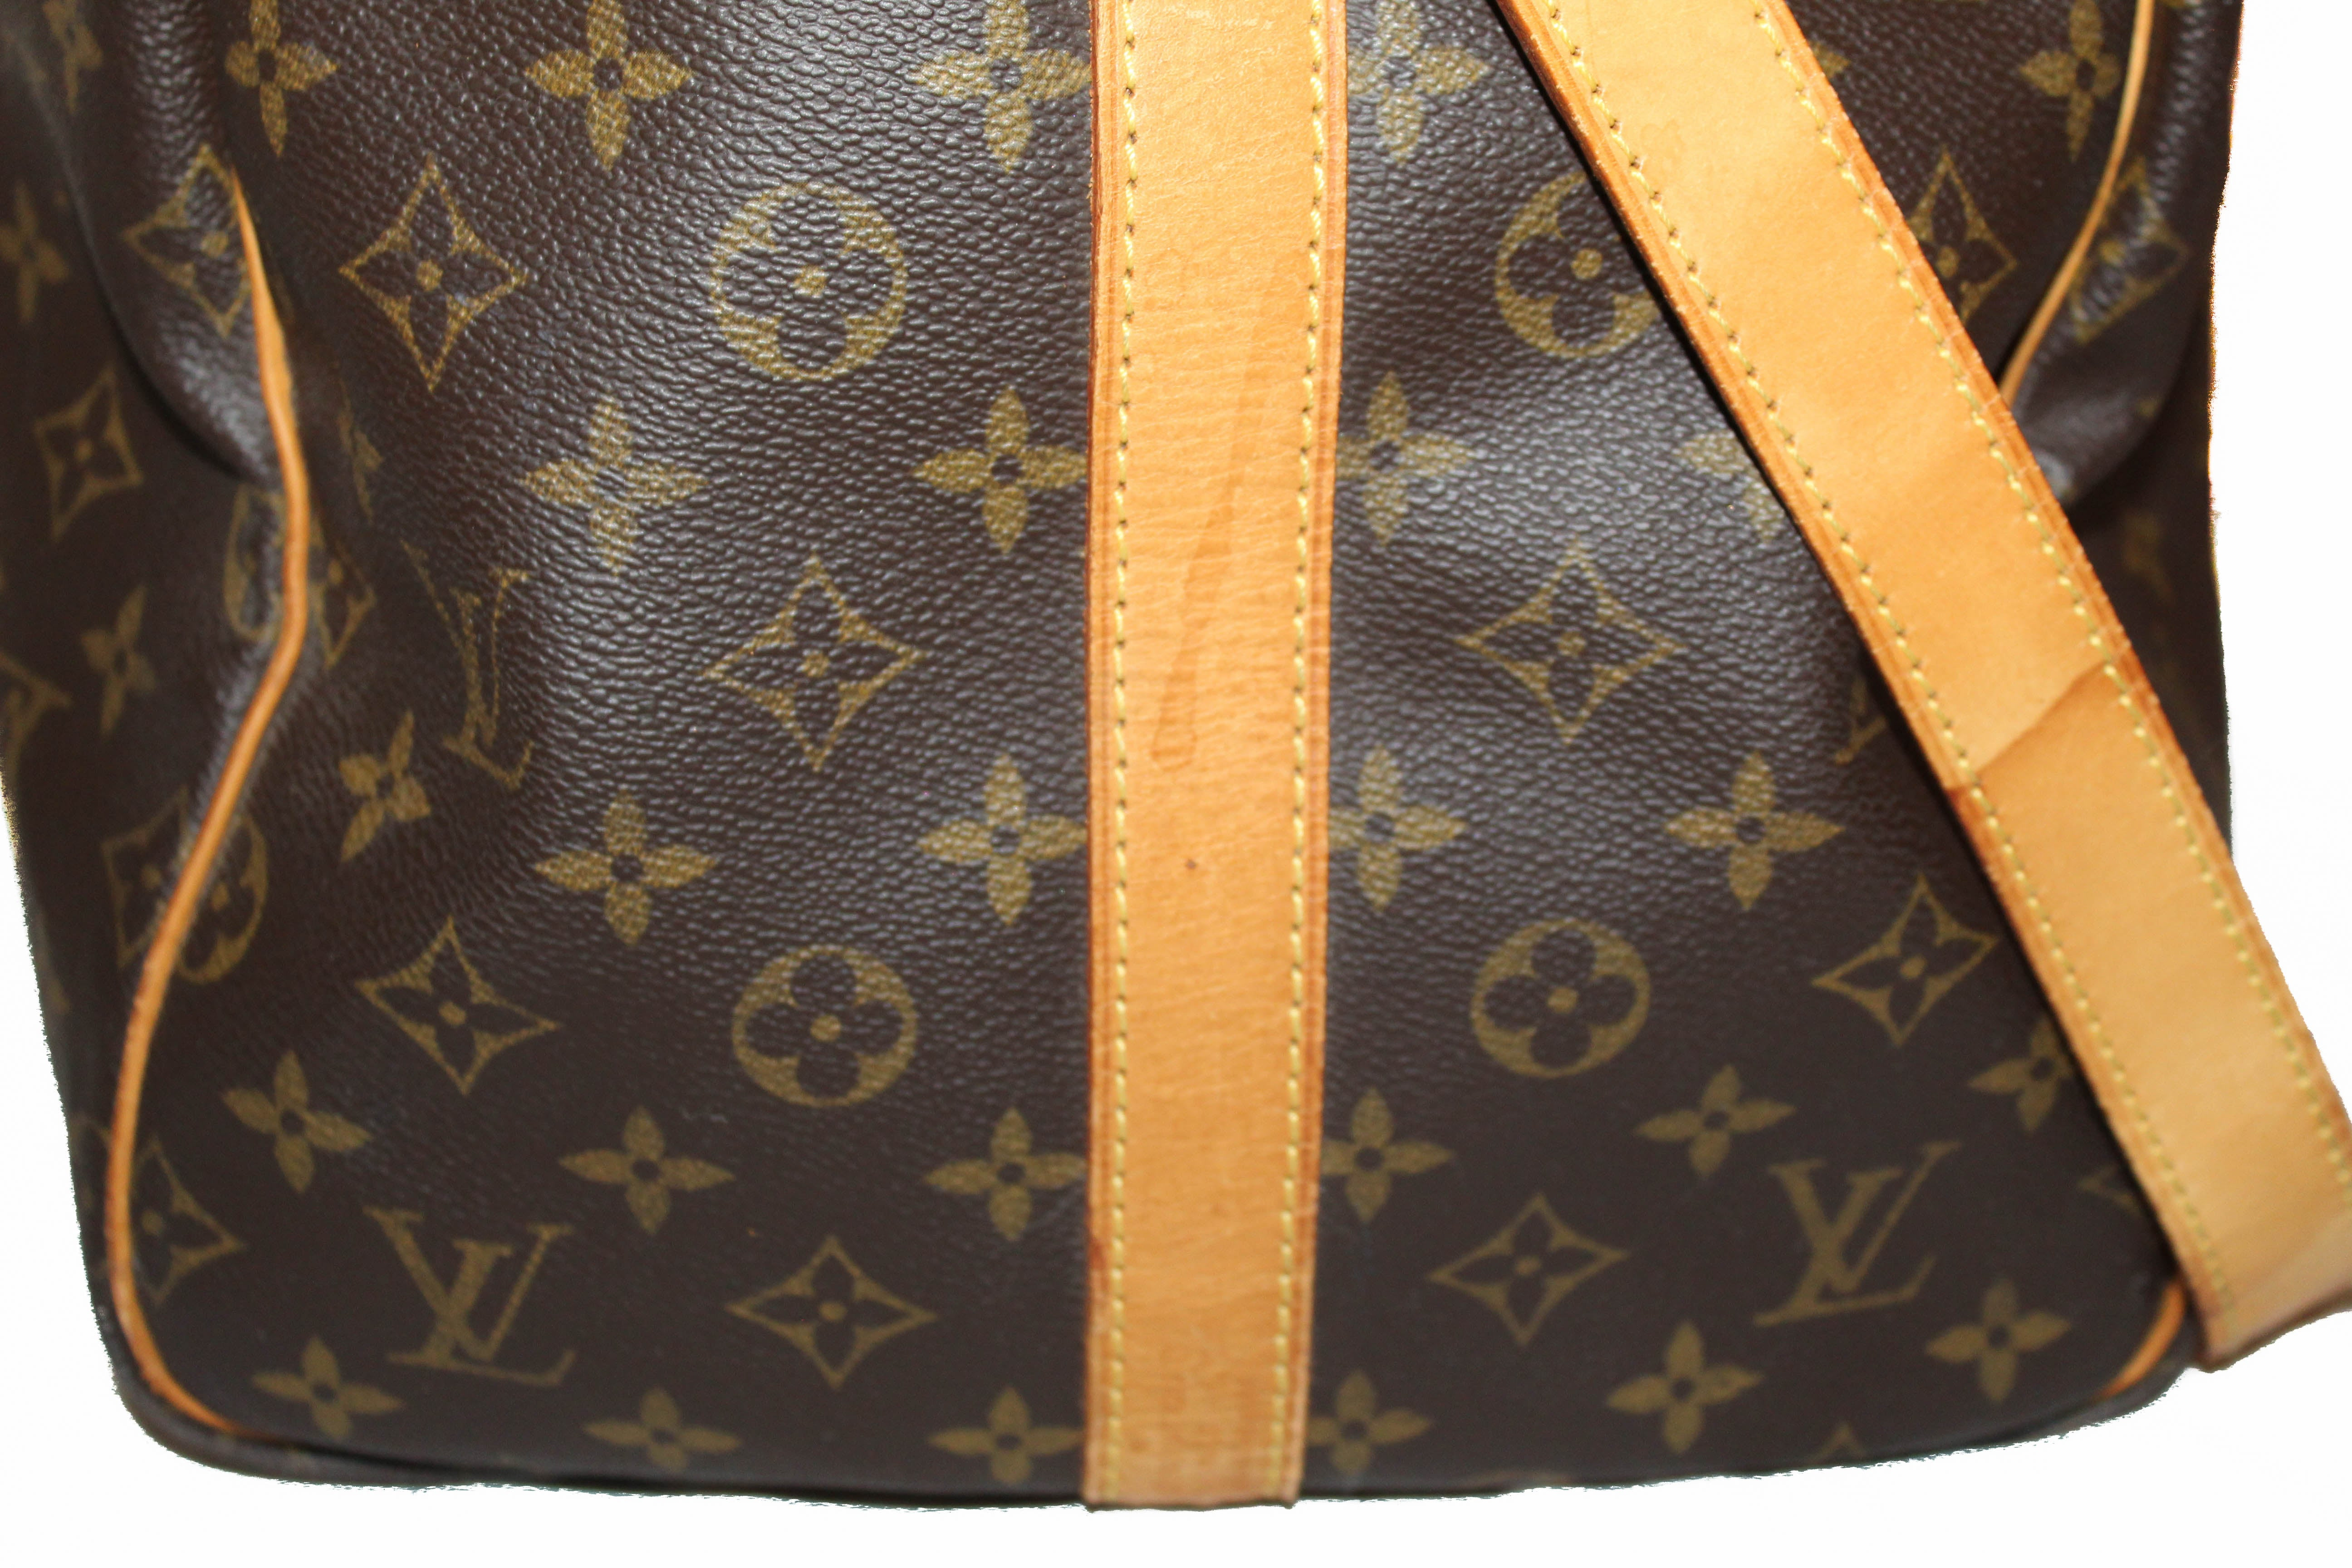 Authentic Louis Vuitton Classic Monogram Keepall 55 Travel Bag